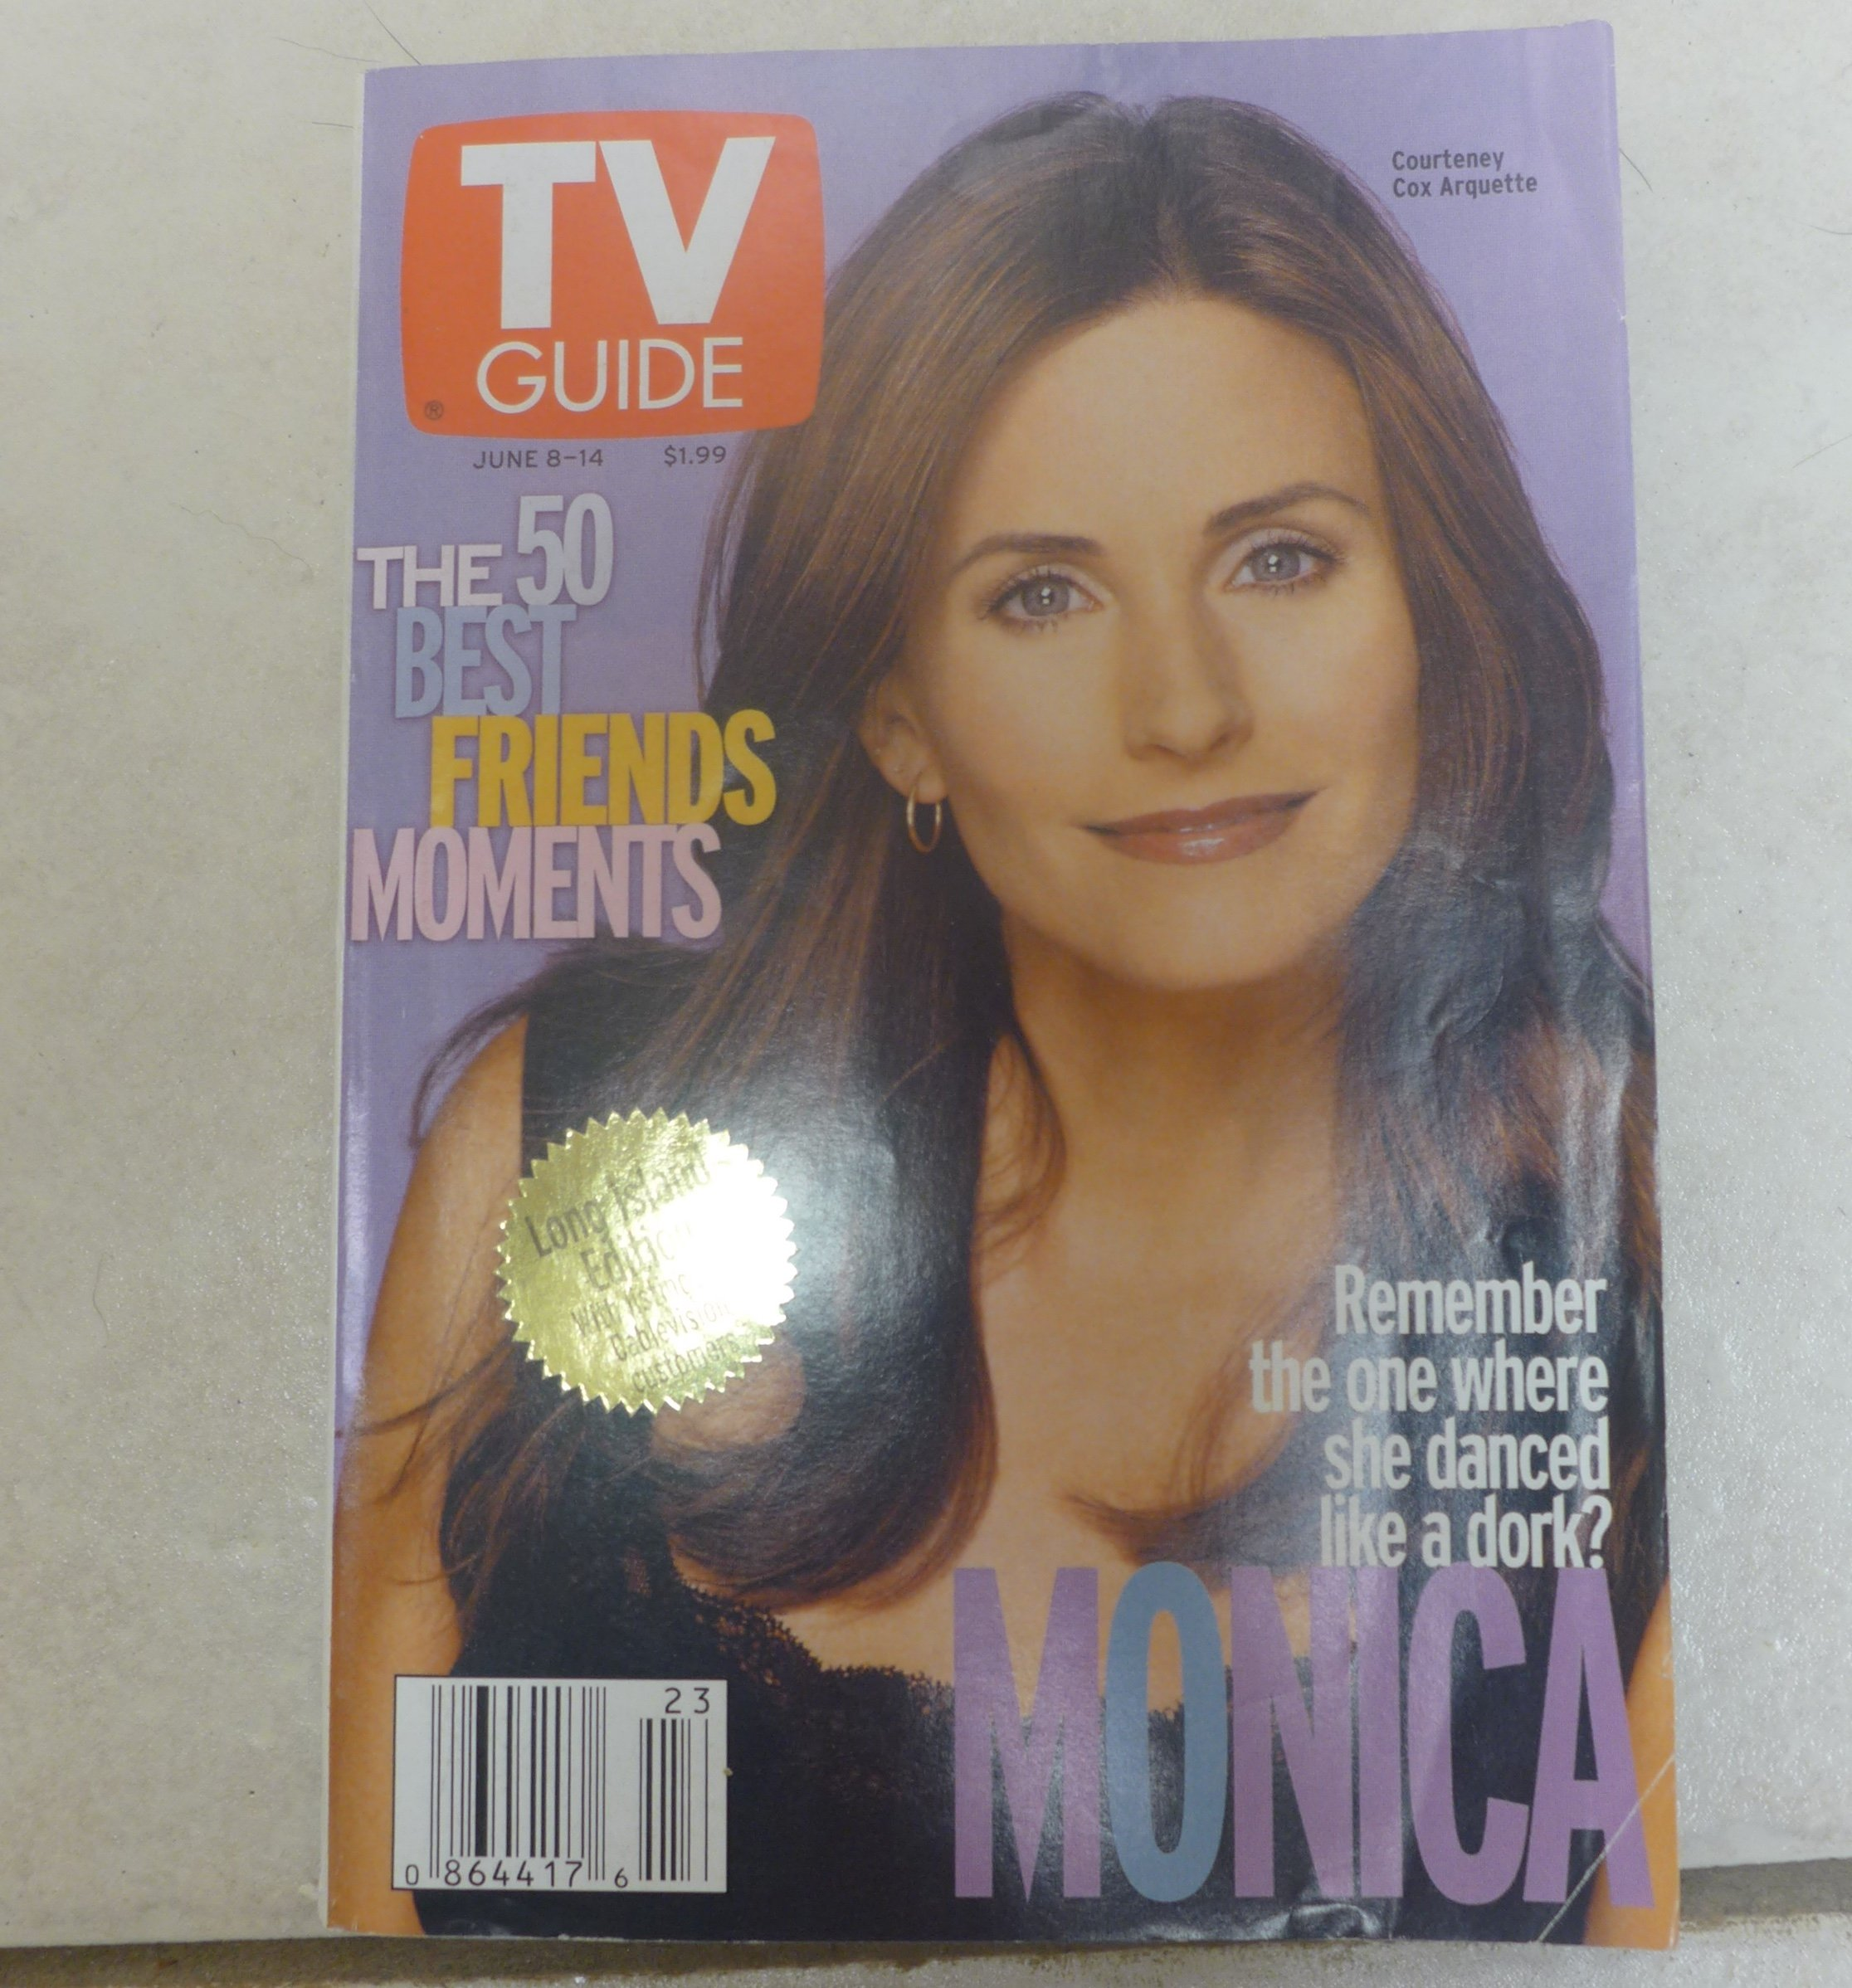 TV Guide June 8-14, 2002 (1 of 6 covers) (Courteney Cox Arquette as